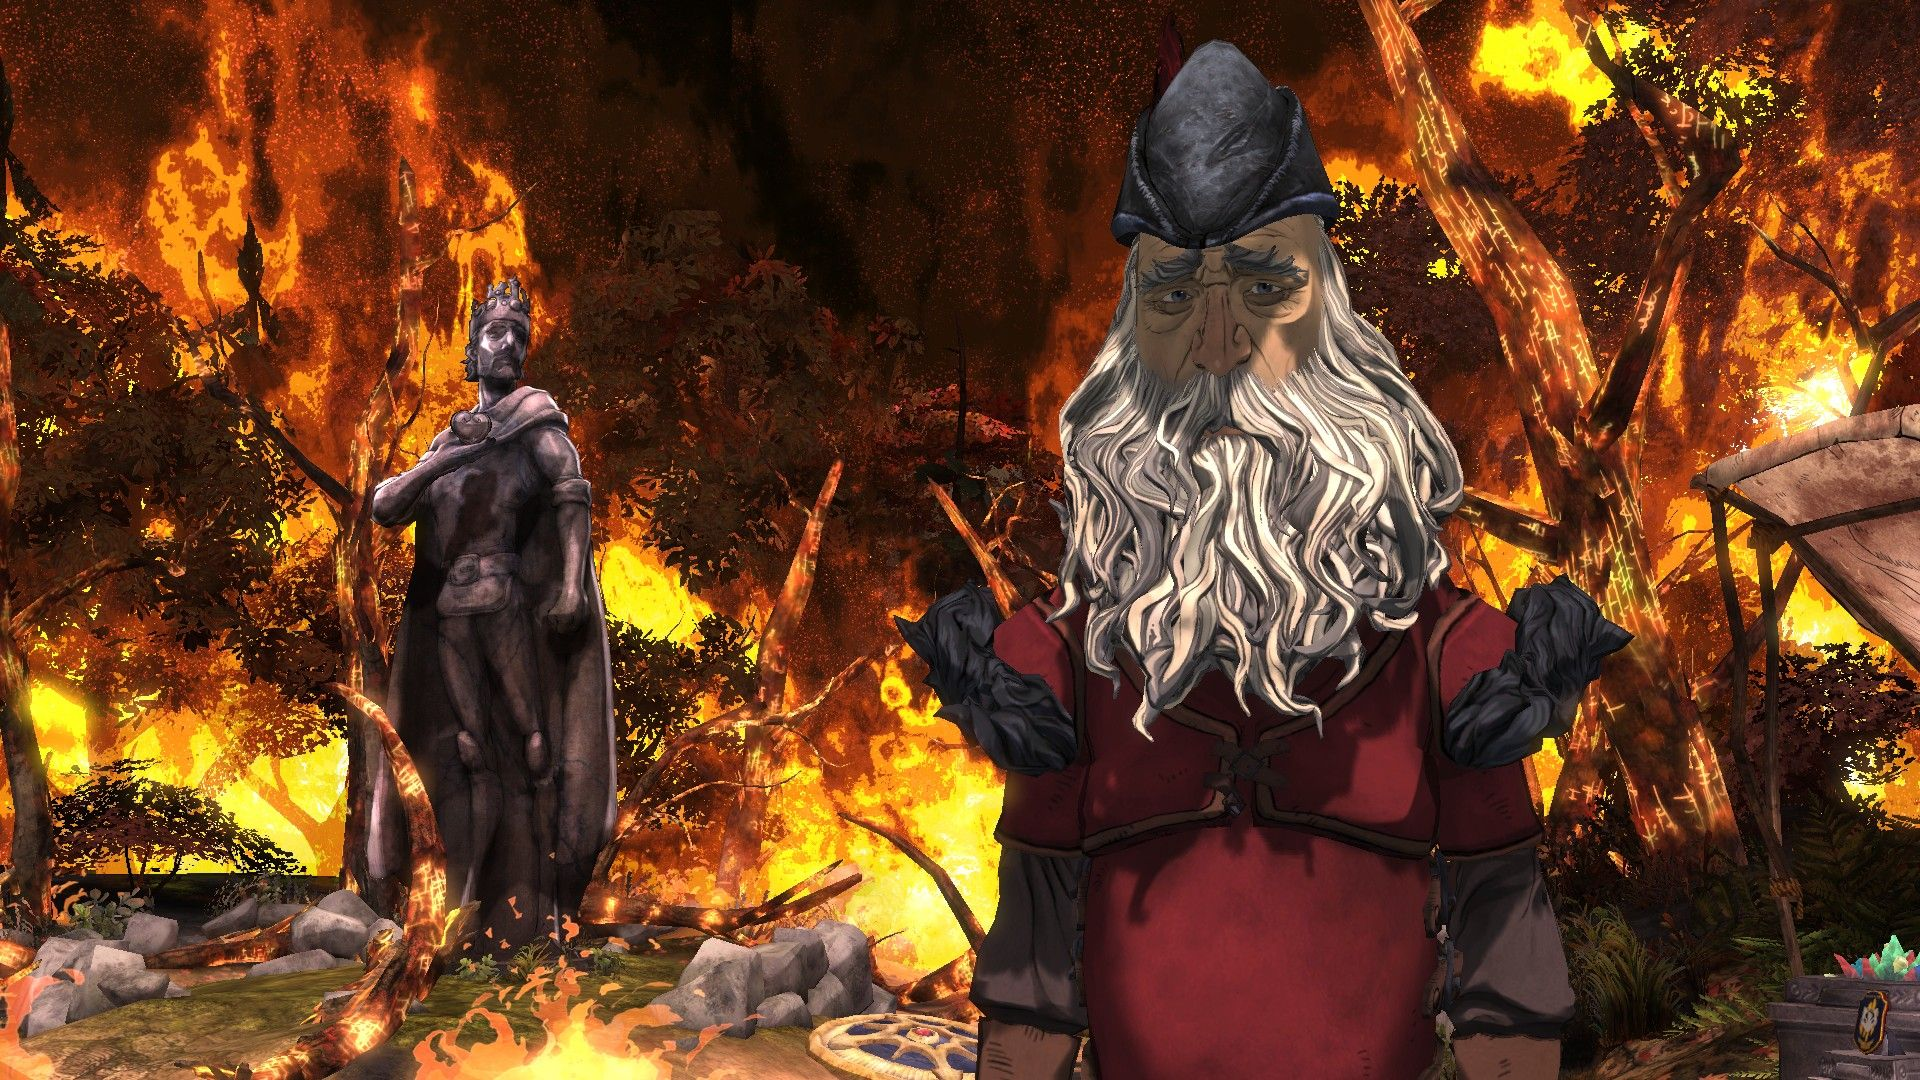 kings-quest-chapter-5-the-good-knight-screenshot-03